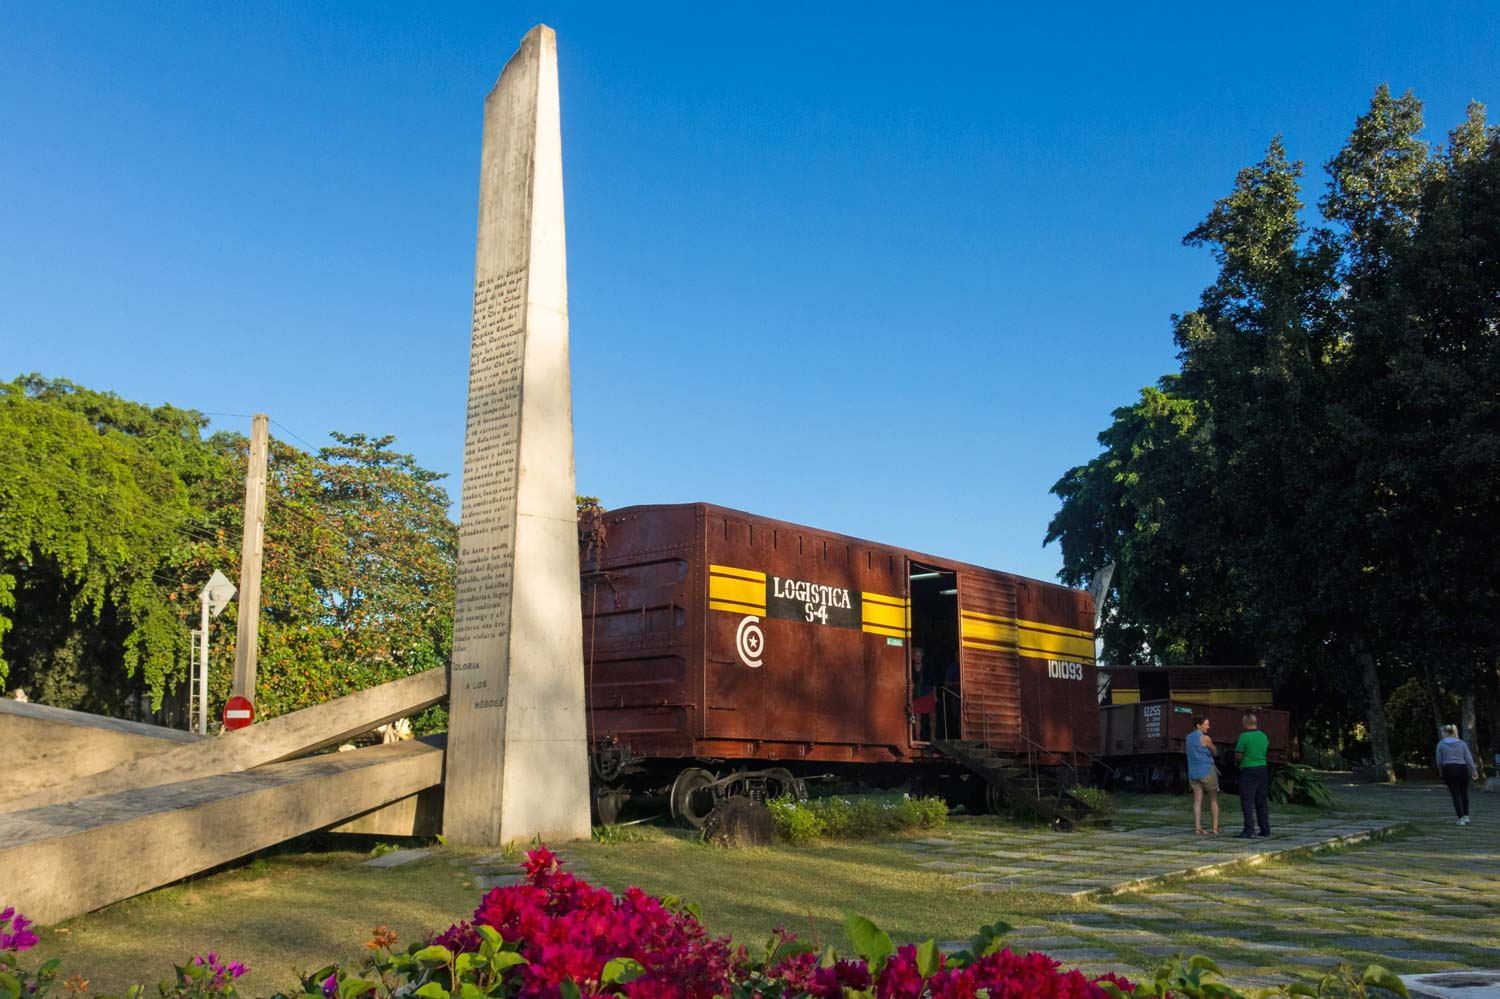 Santa Clara train in Cuba part of the revolution with Chew Guevara